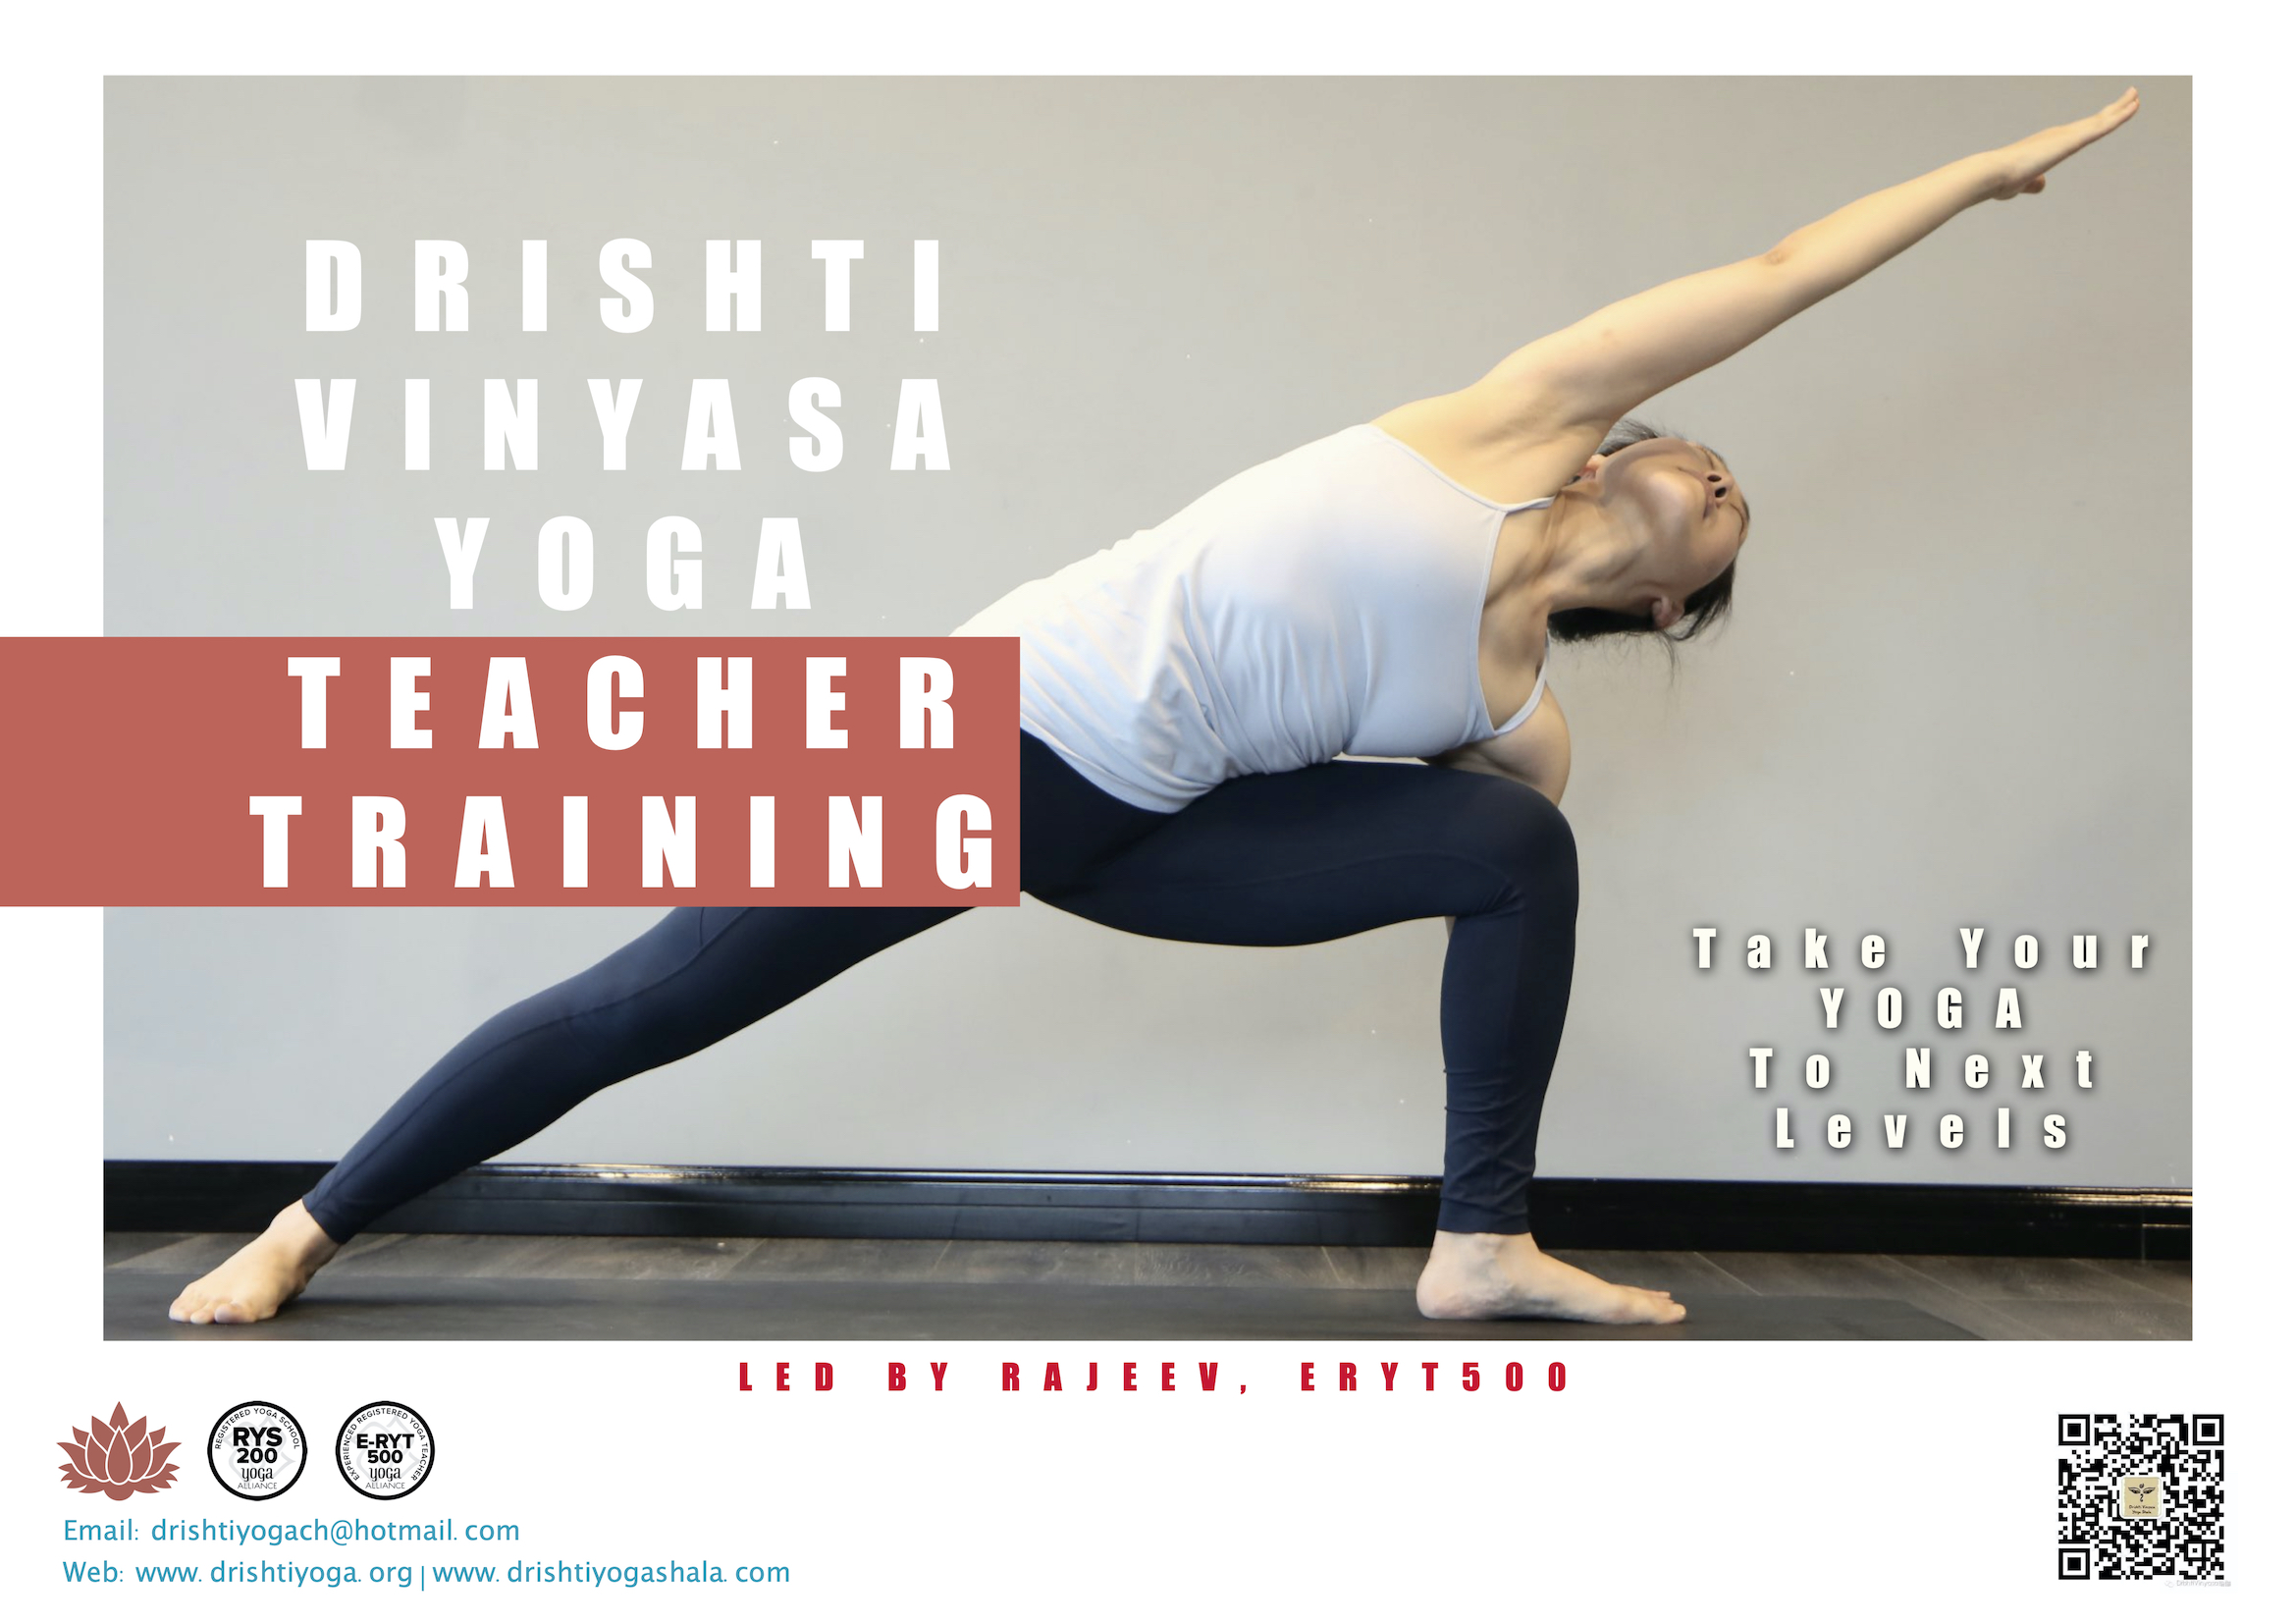 Drishti Vinyasa Yoga Teacher Training - Aug-Nov 2020 - Shanghai, China copy 10-p1.jpg